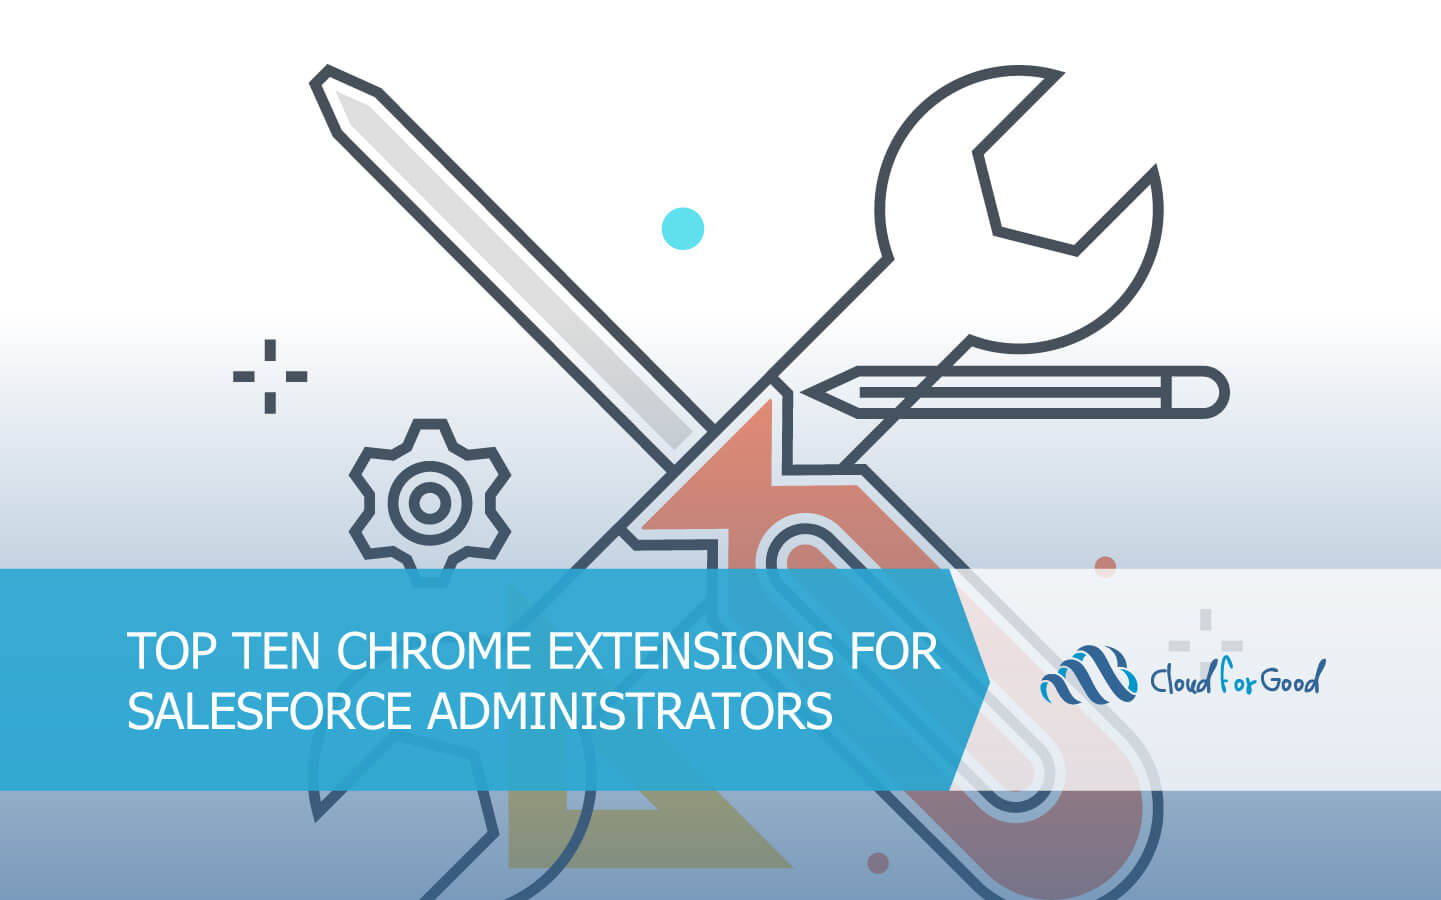 Top 10 Google Chrome Extensions for Salesforce Administrators